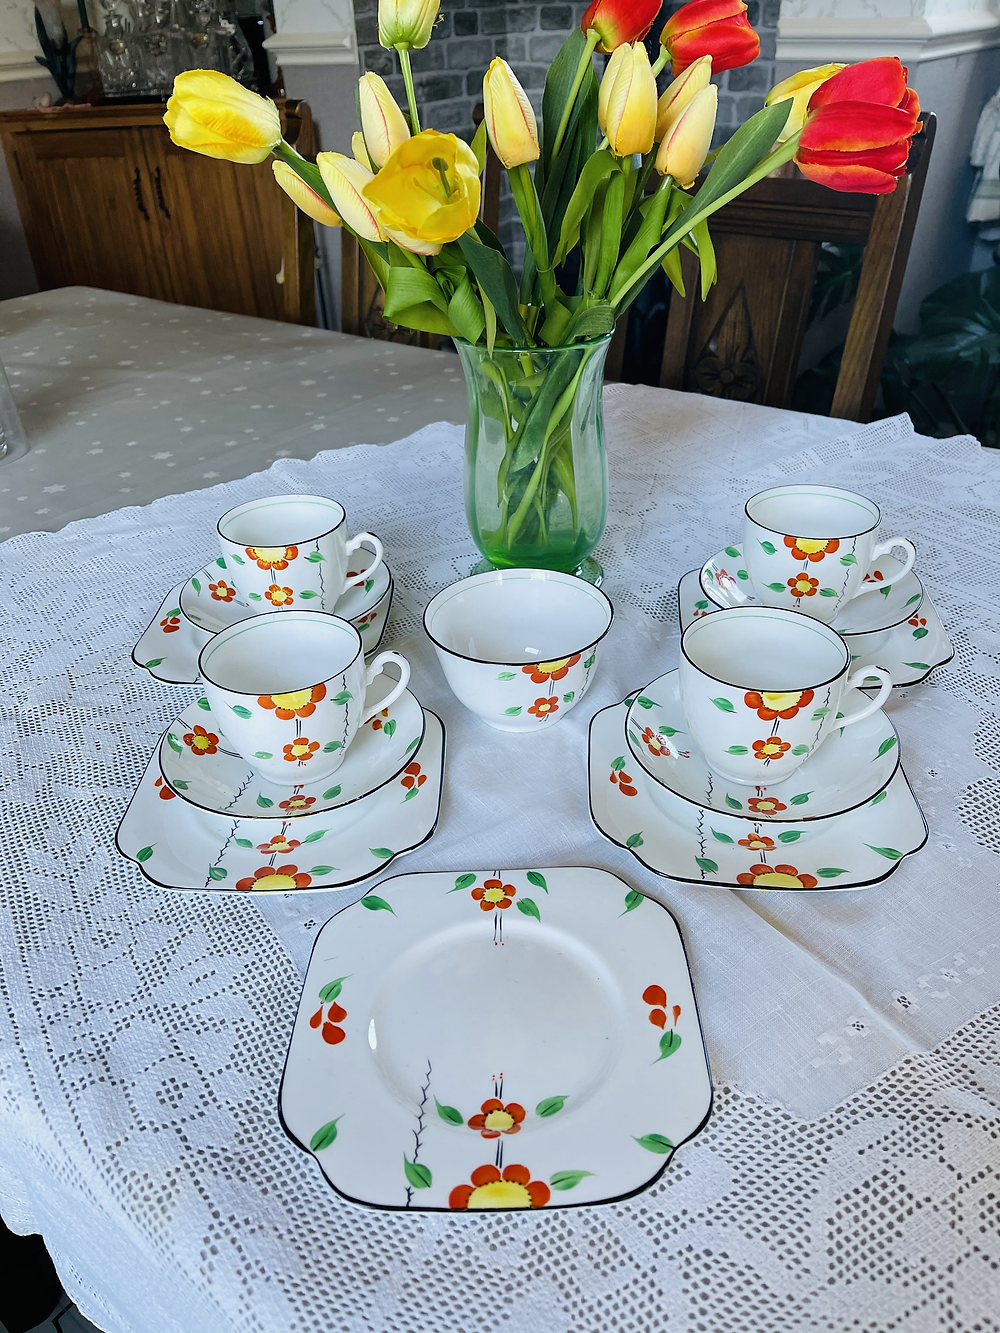 1930s Vintage China and Lace table cloth